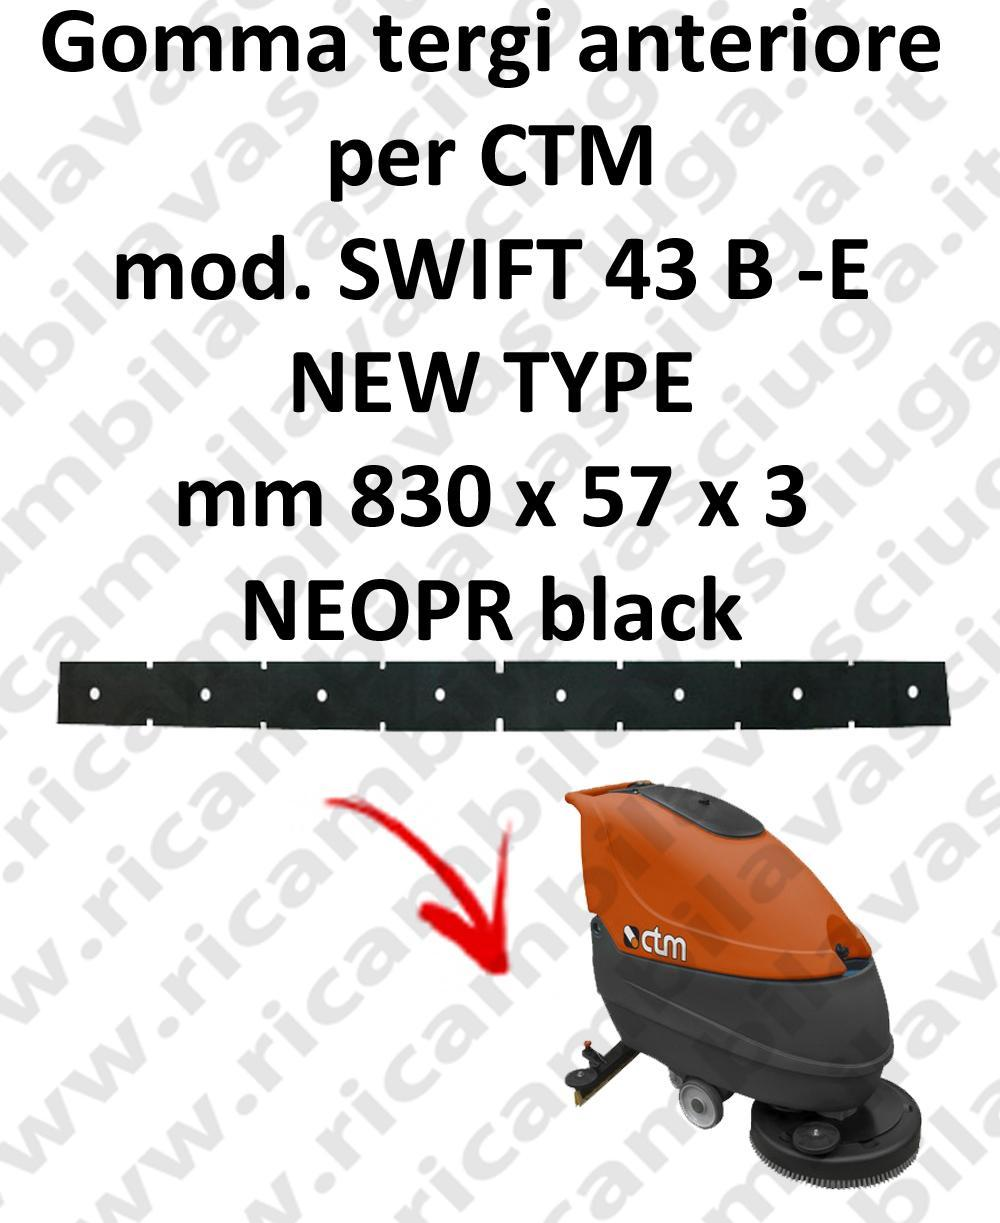 SWIFT 43 B - E new type squeegee rubber scrubber dryer front for CTM